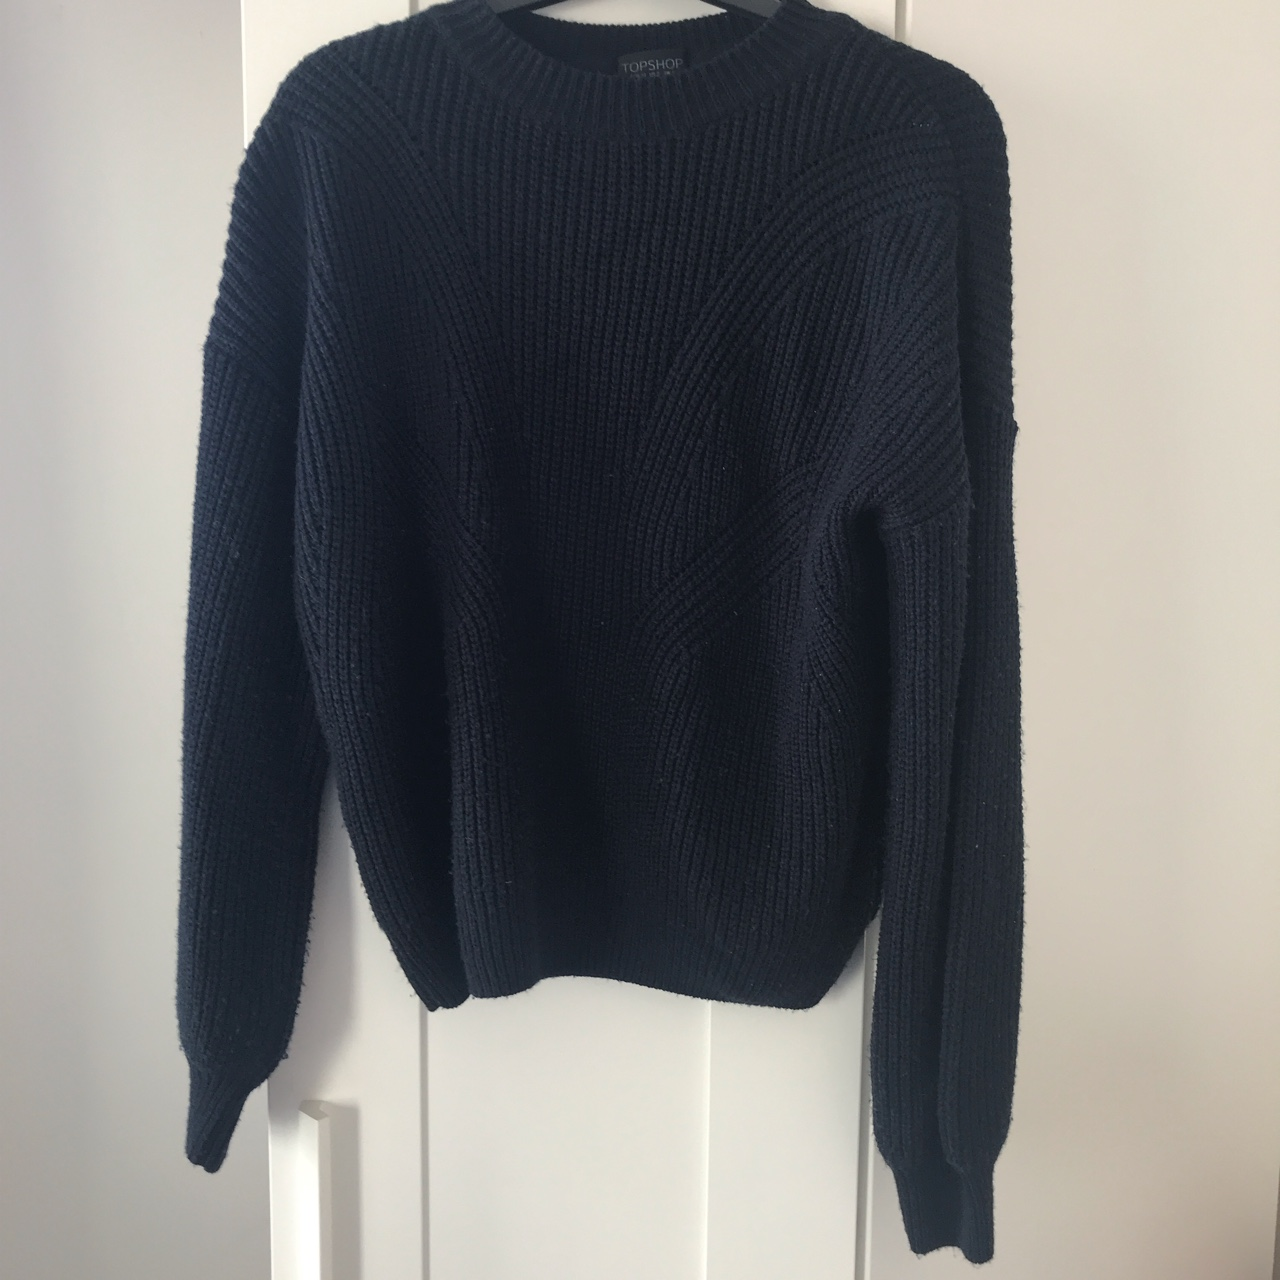 Product Image 1 - TOPSHOP navy blue chunky knitted